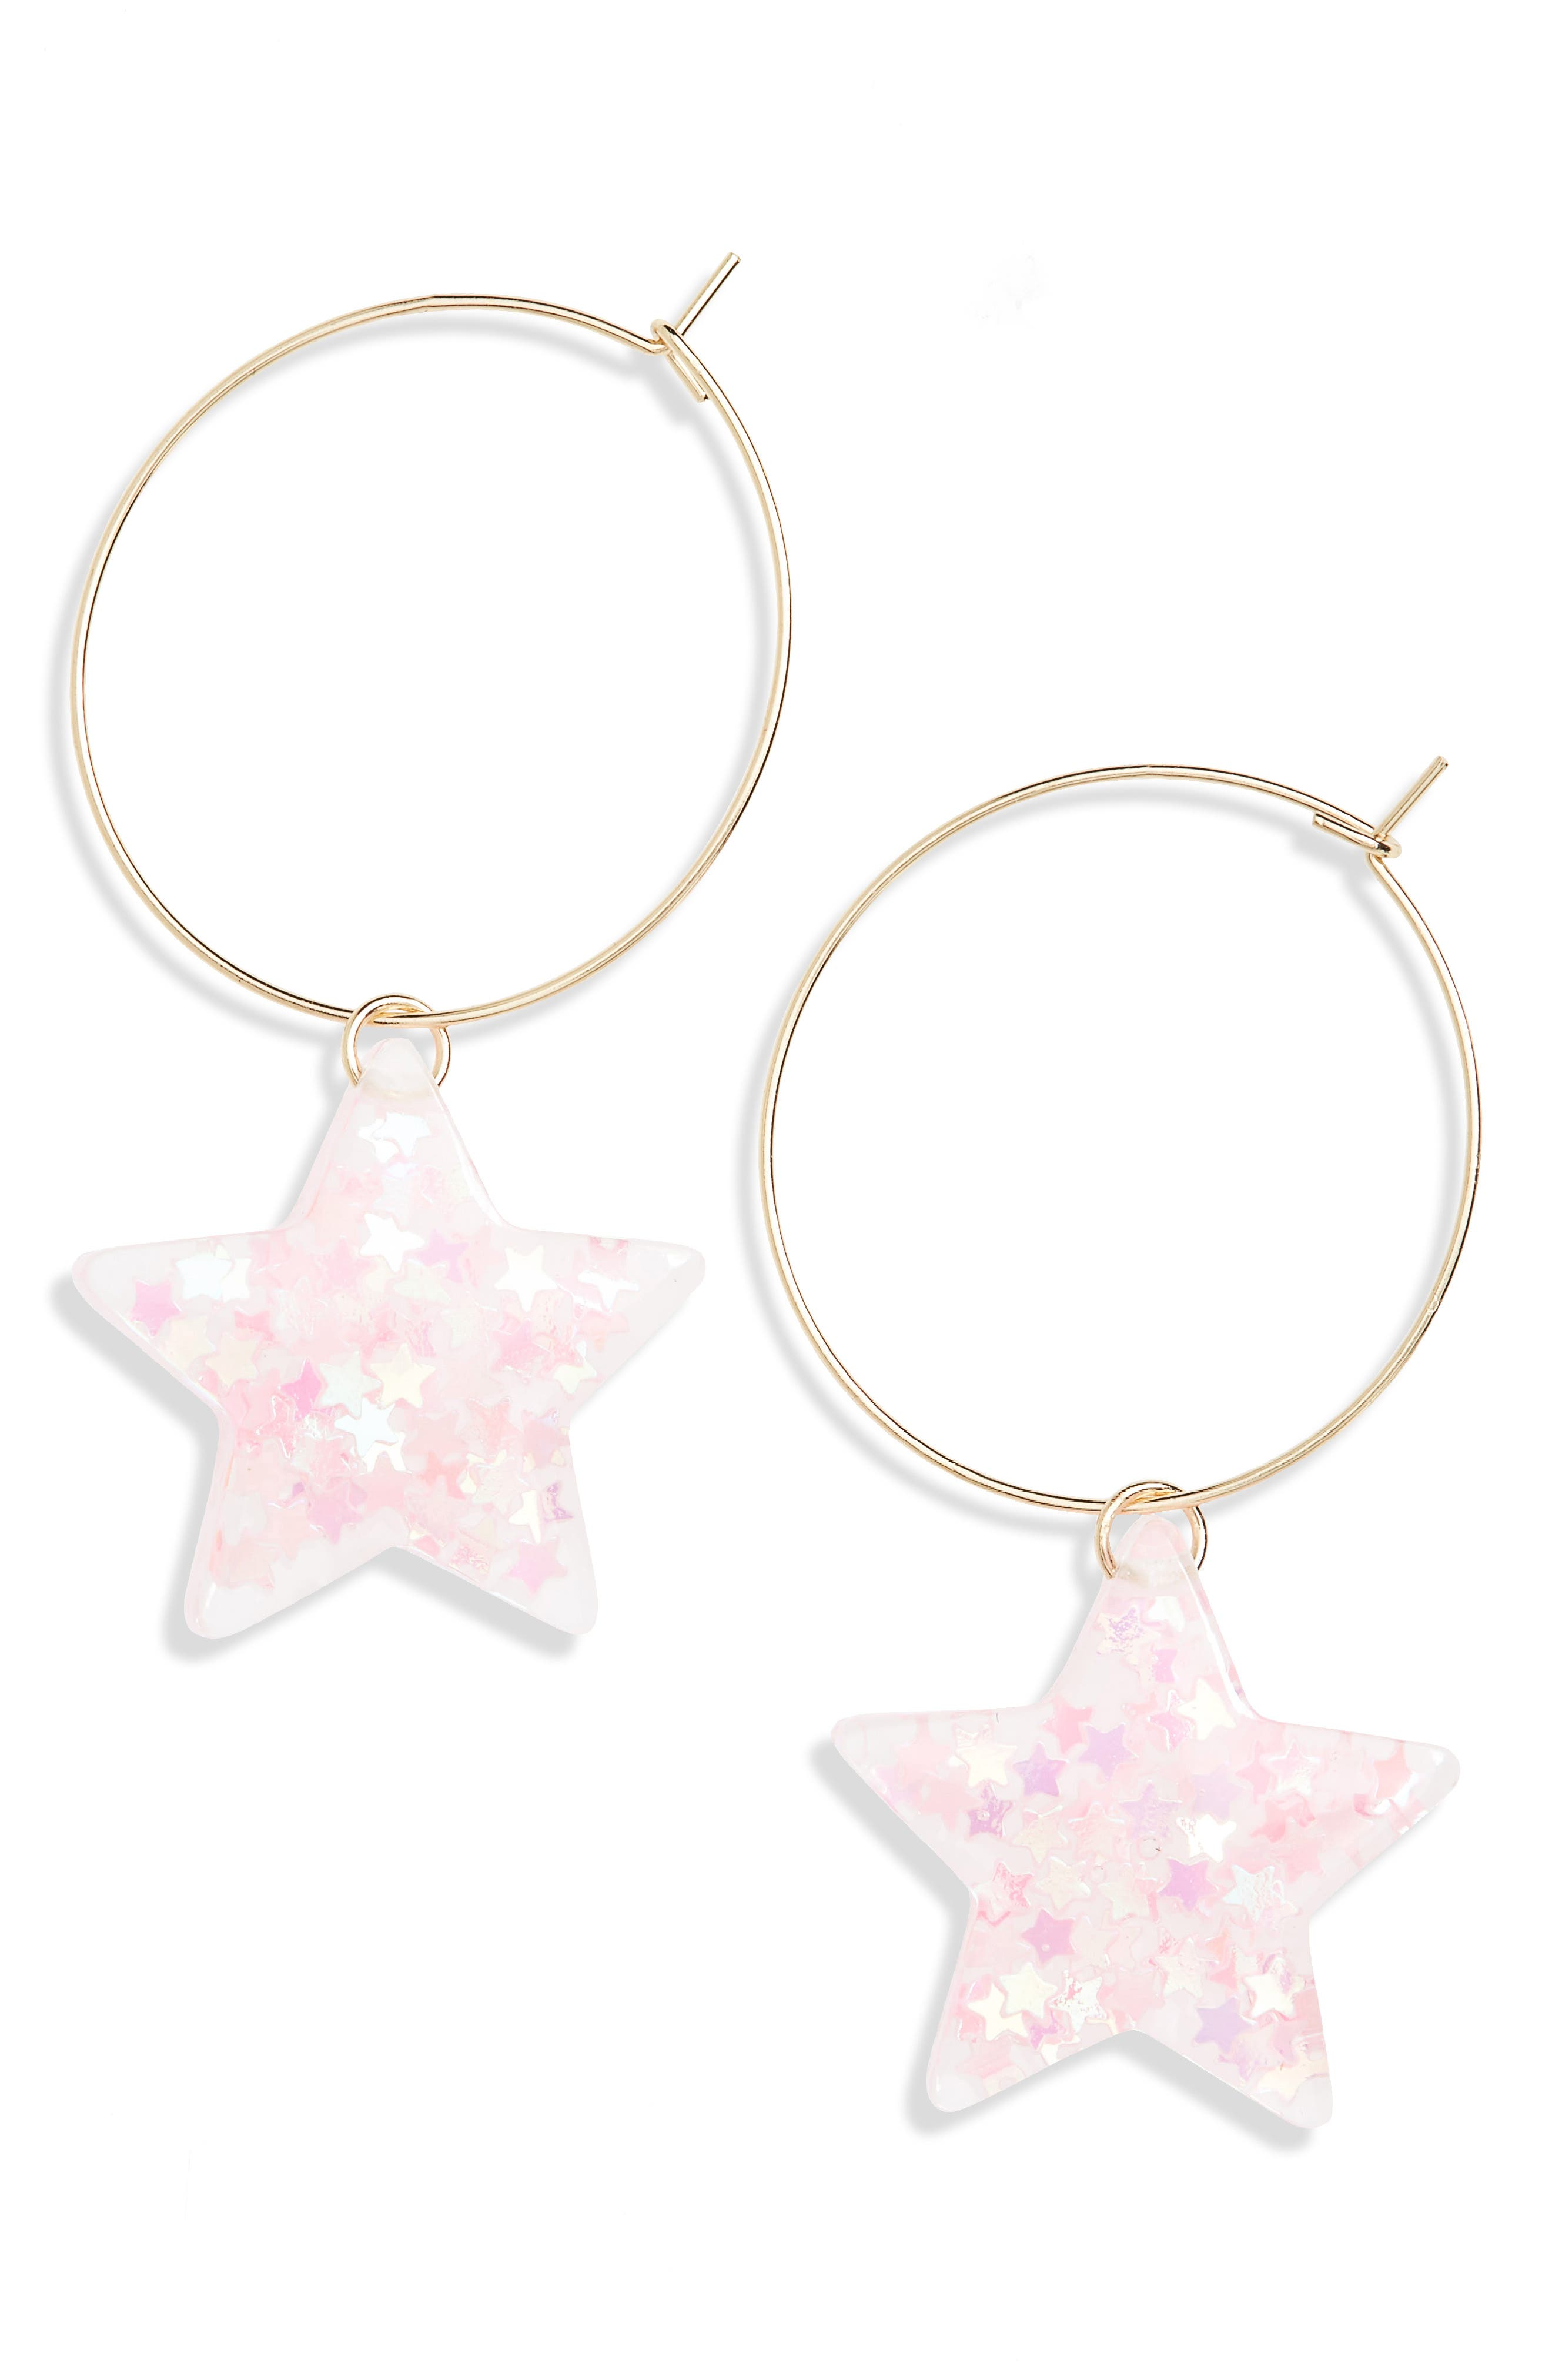 Small Glitter Star Hoop Earrings,                             Main thumbnail 1, color,                             650